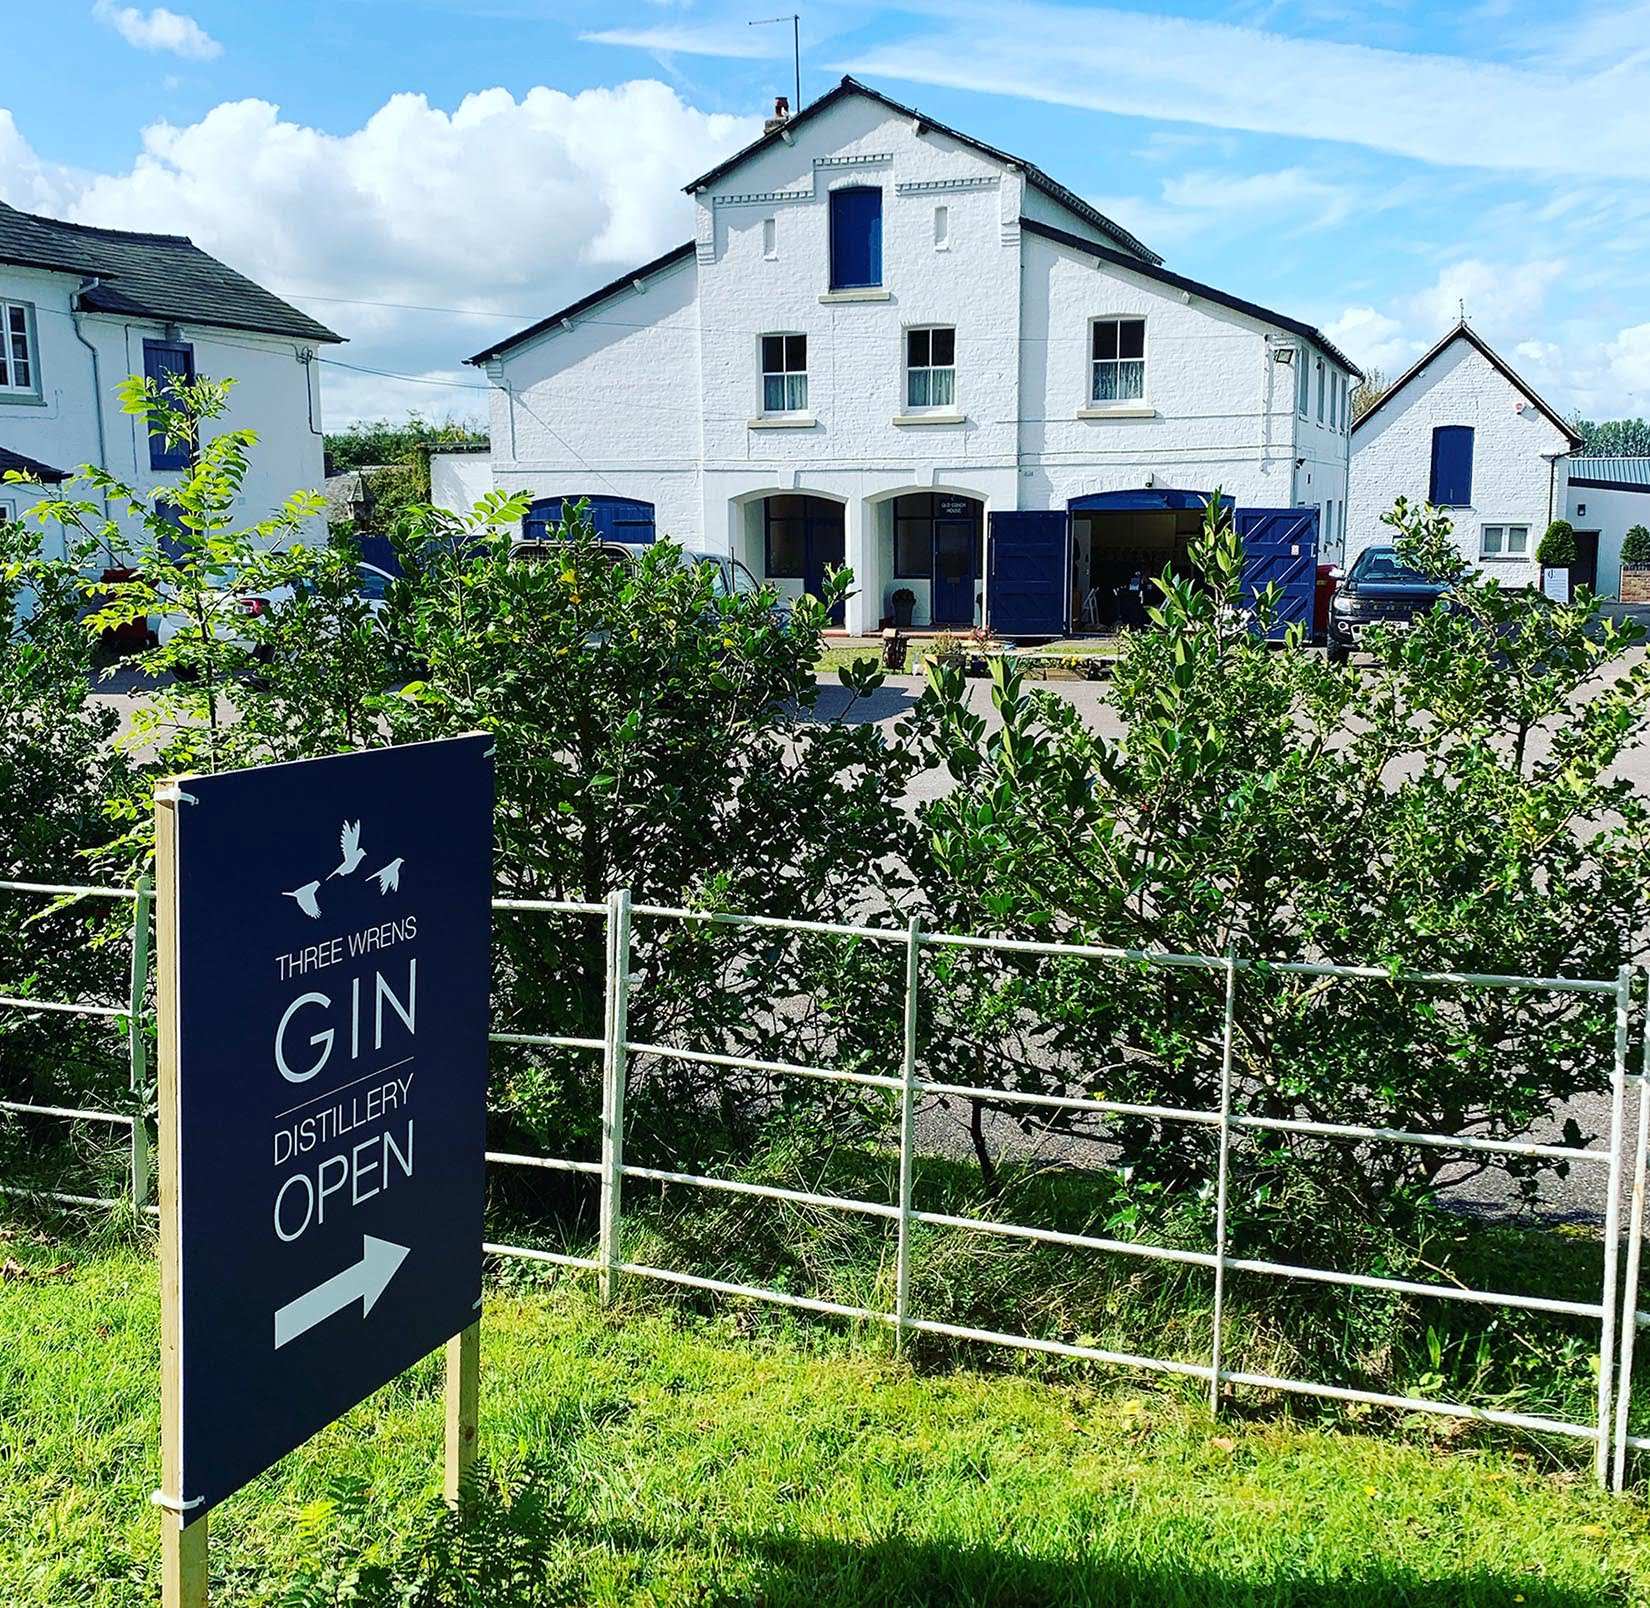 three wrens gin distillery view from road